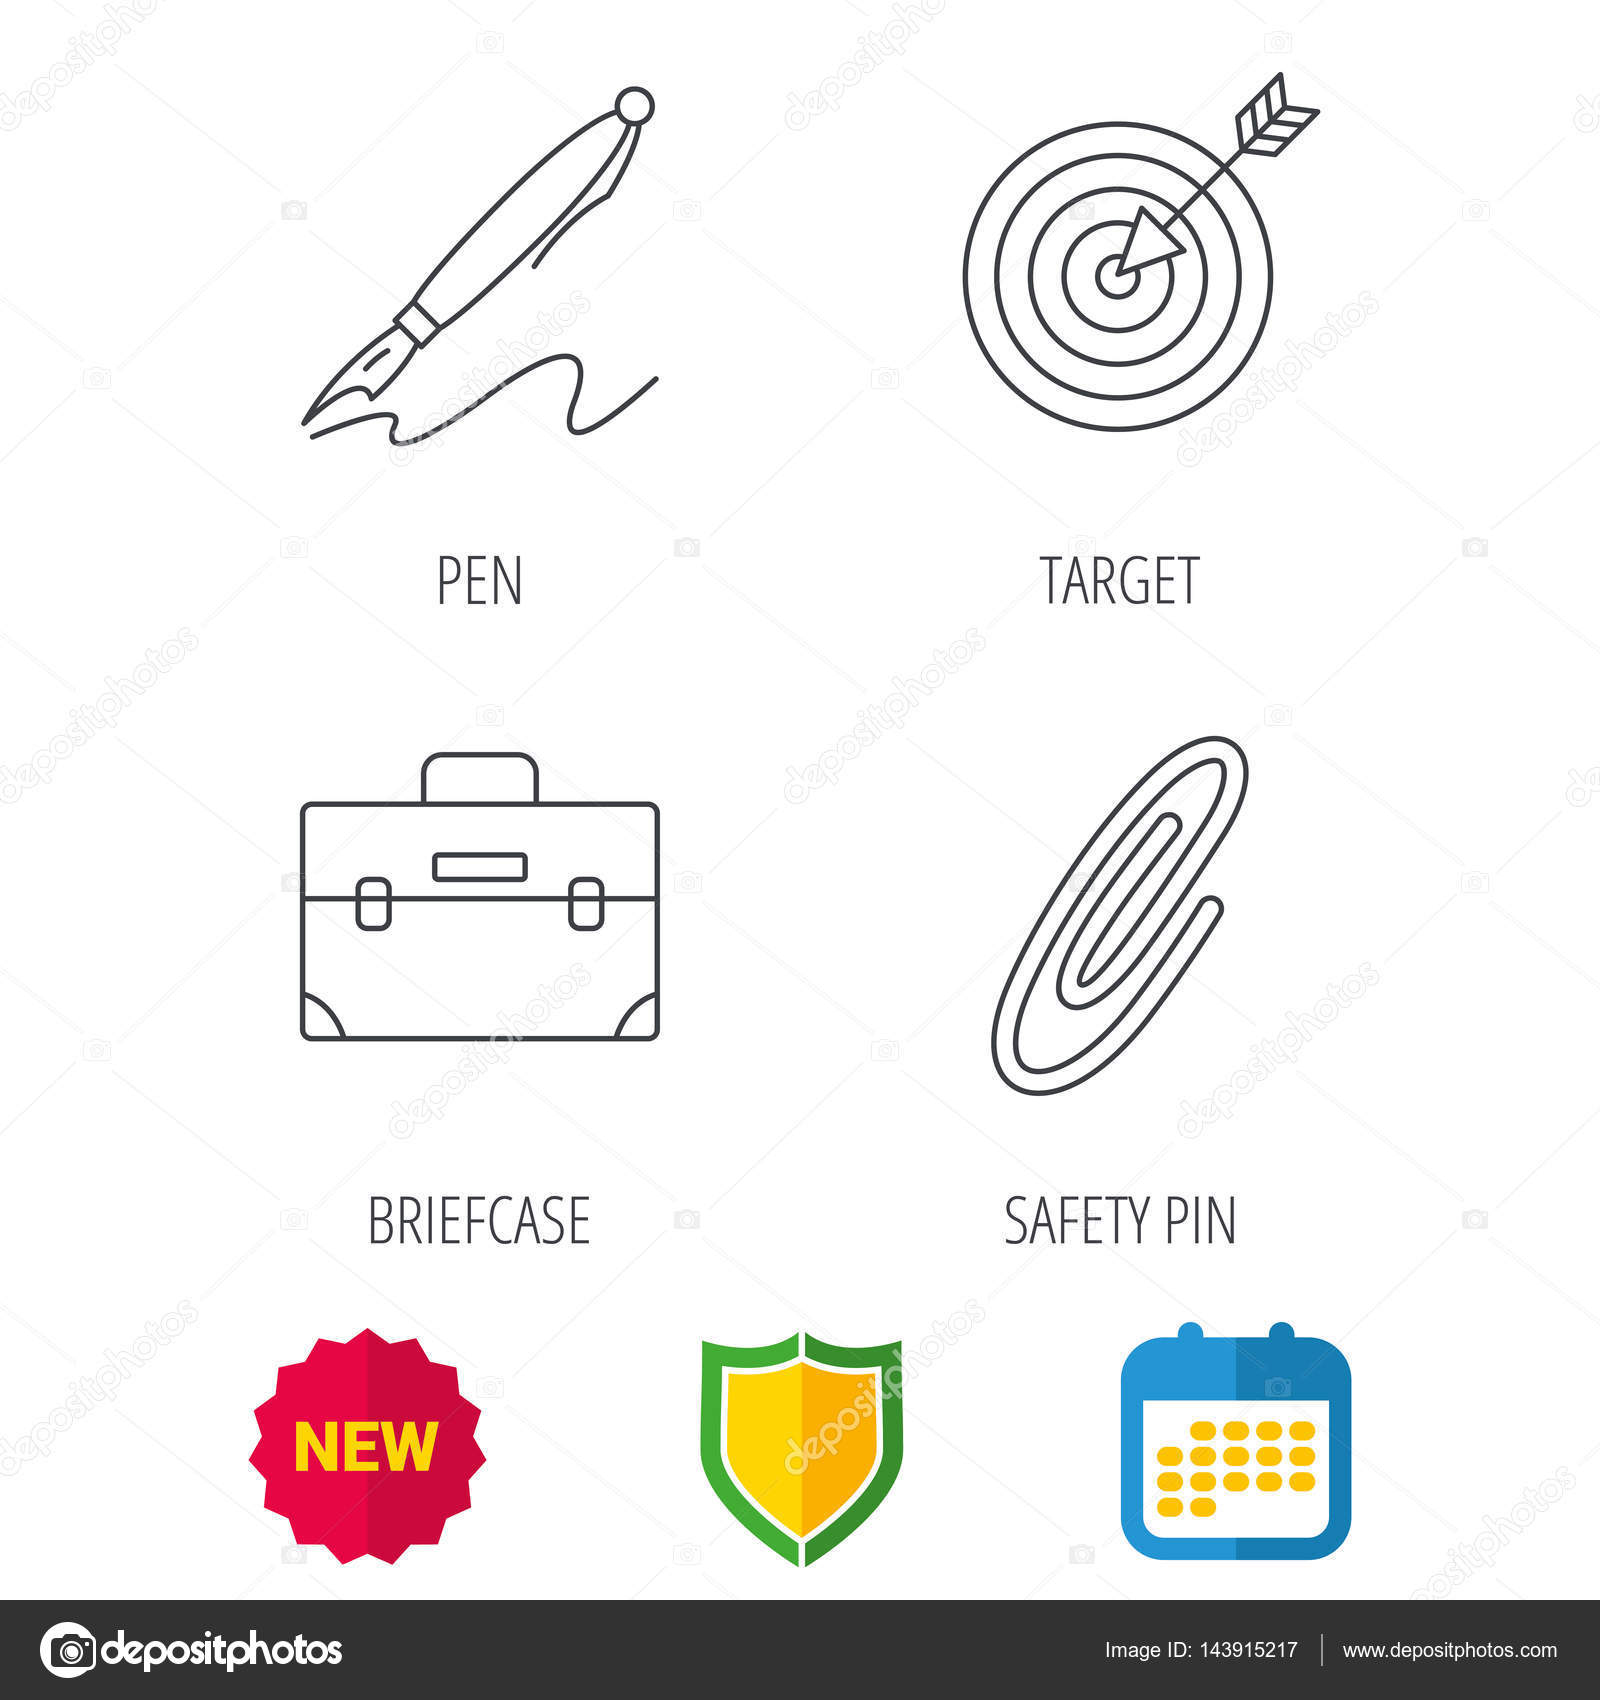 briefcase safety pin and target icons stock vector tanyastock